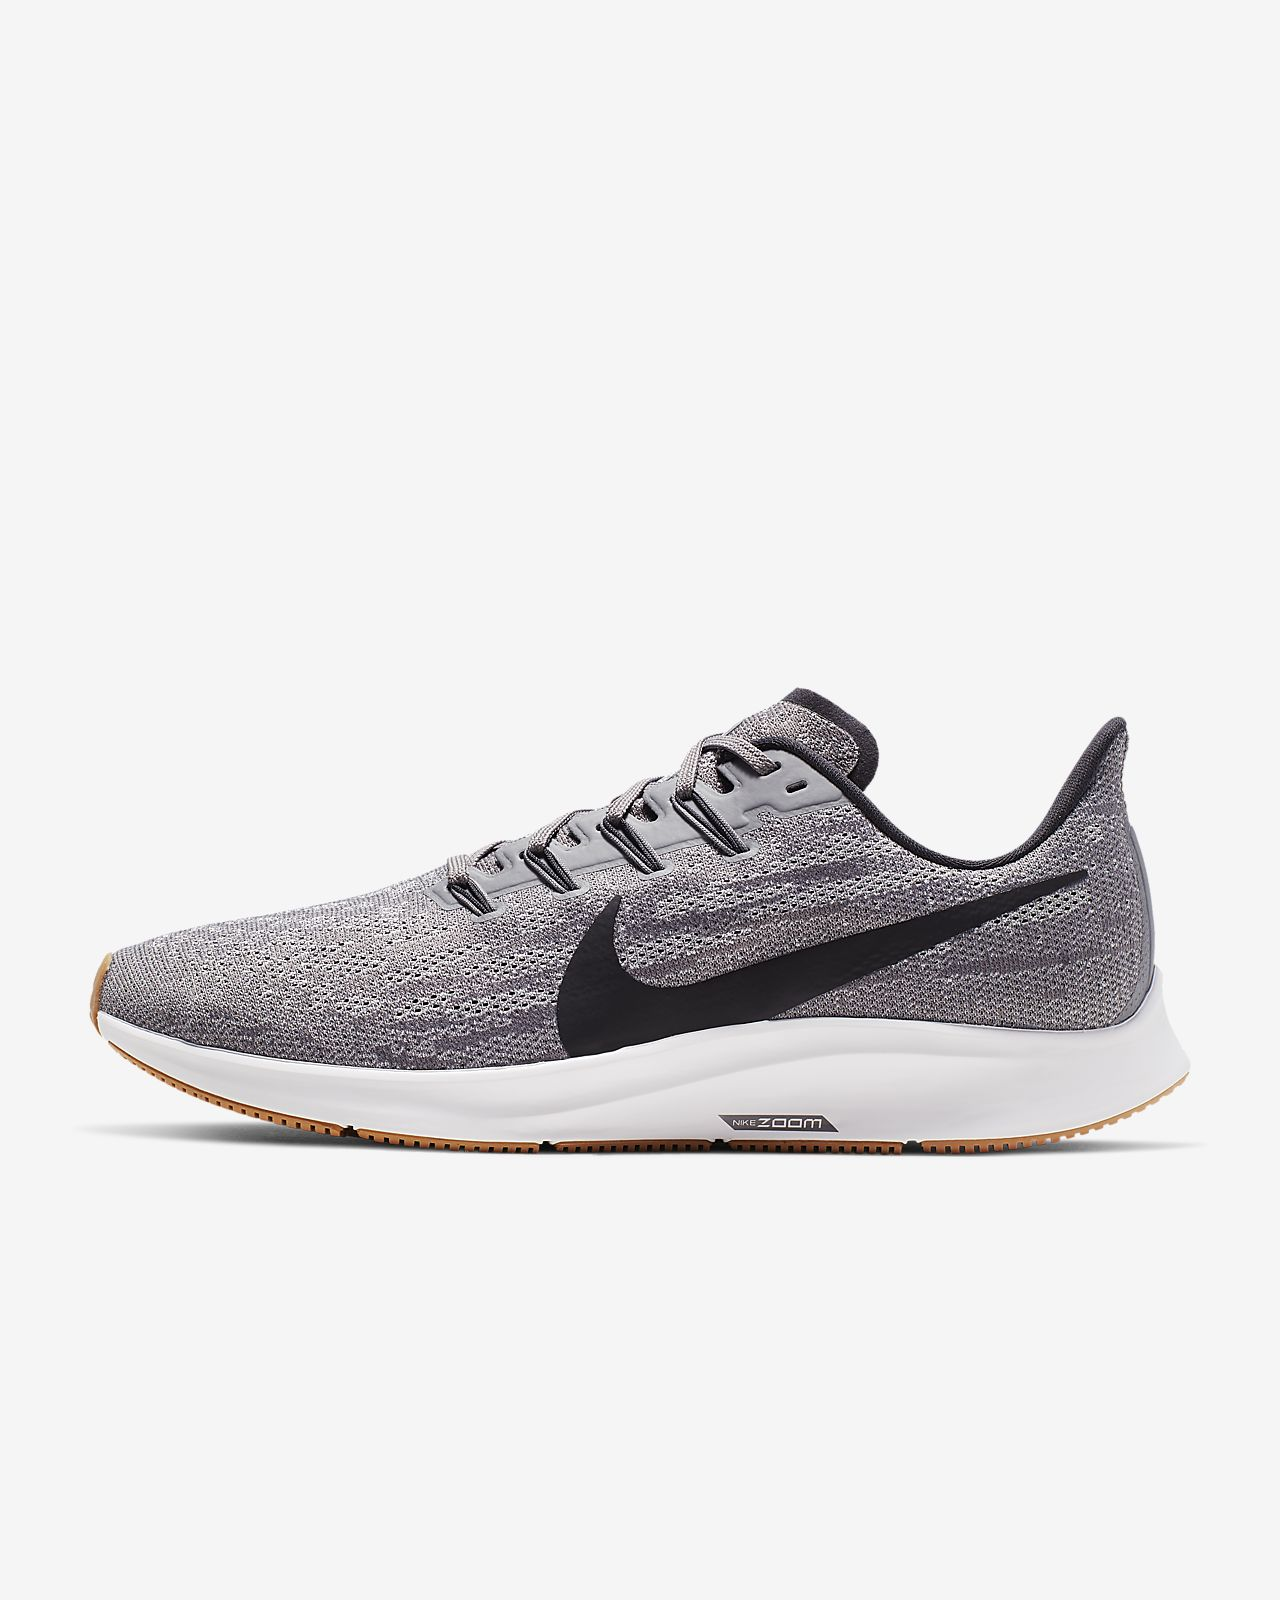 hot sale online 5aad1 73673 Nike Air Zoom Pegasus 36 Men's Running Shoe